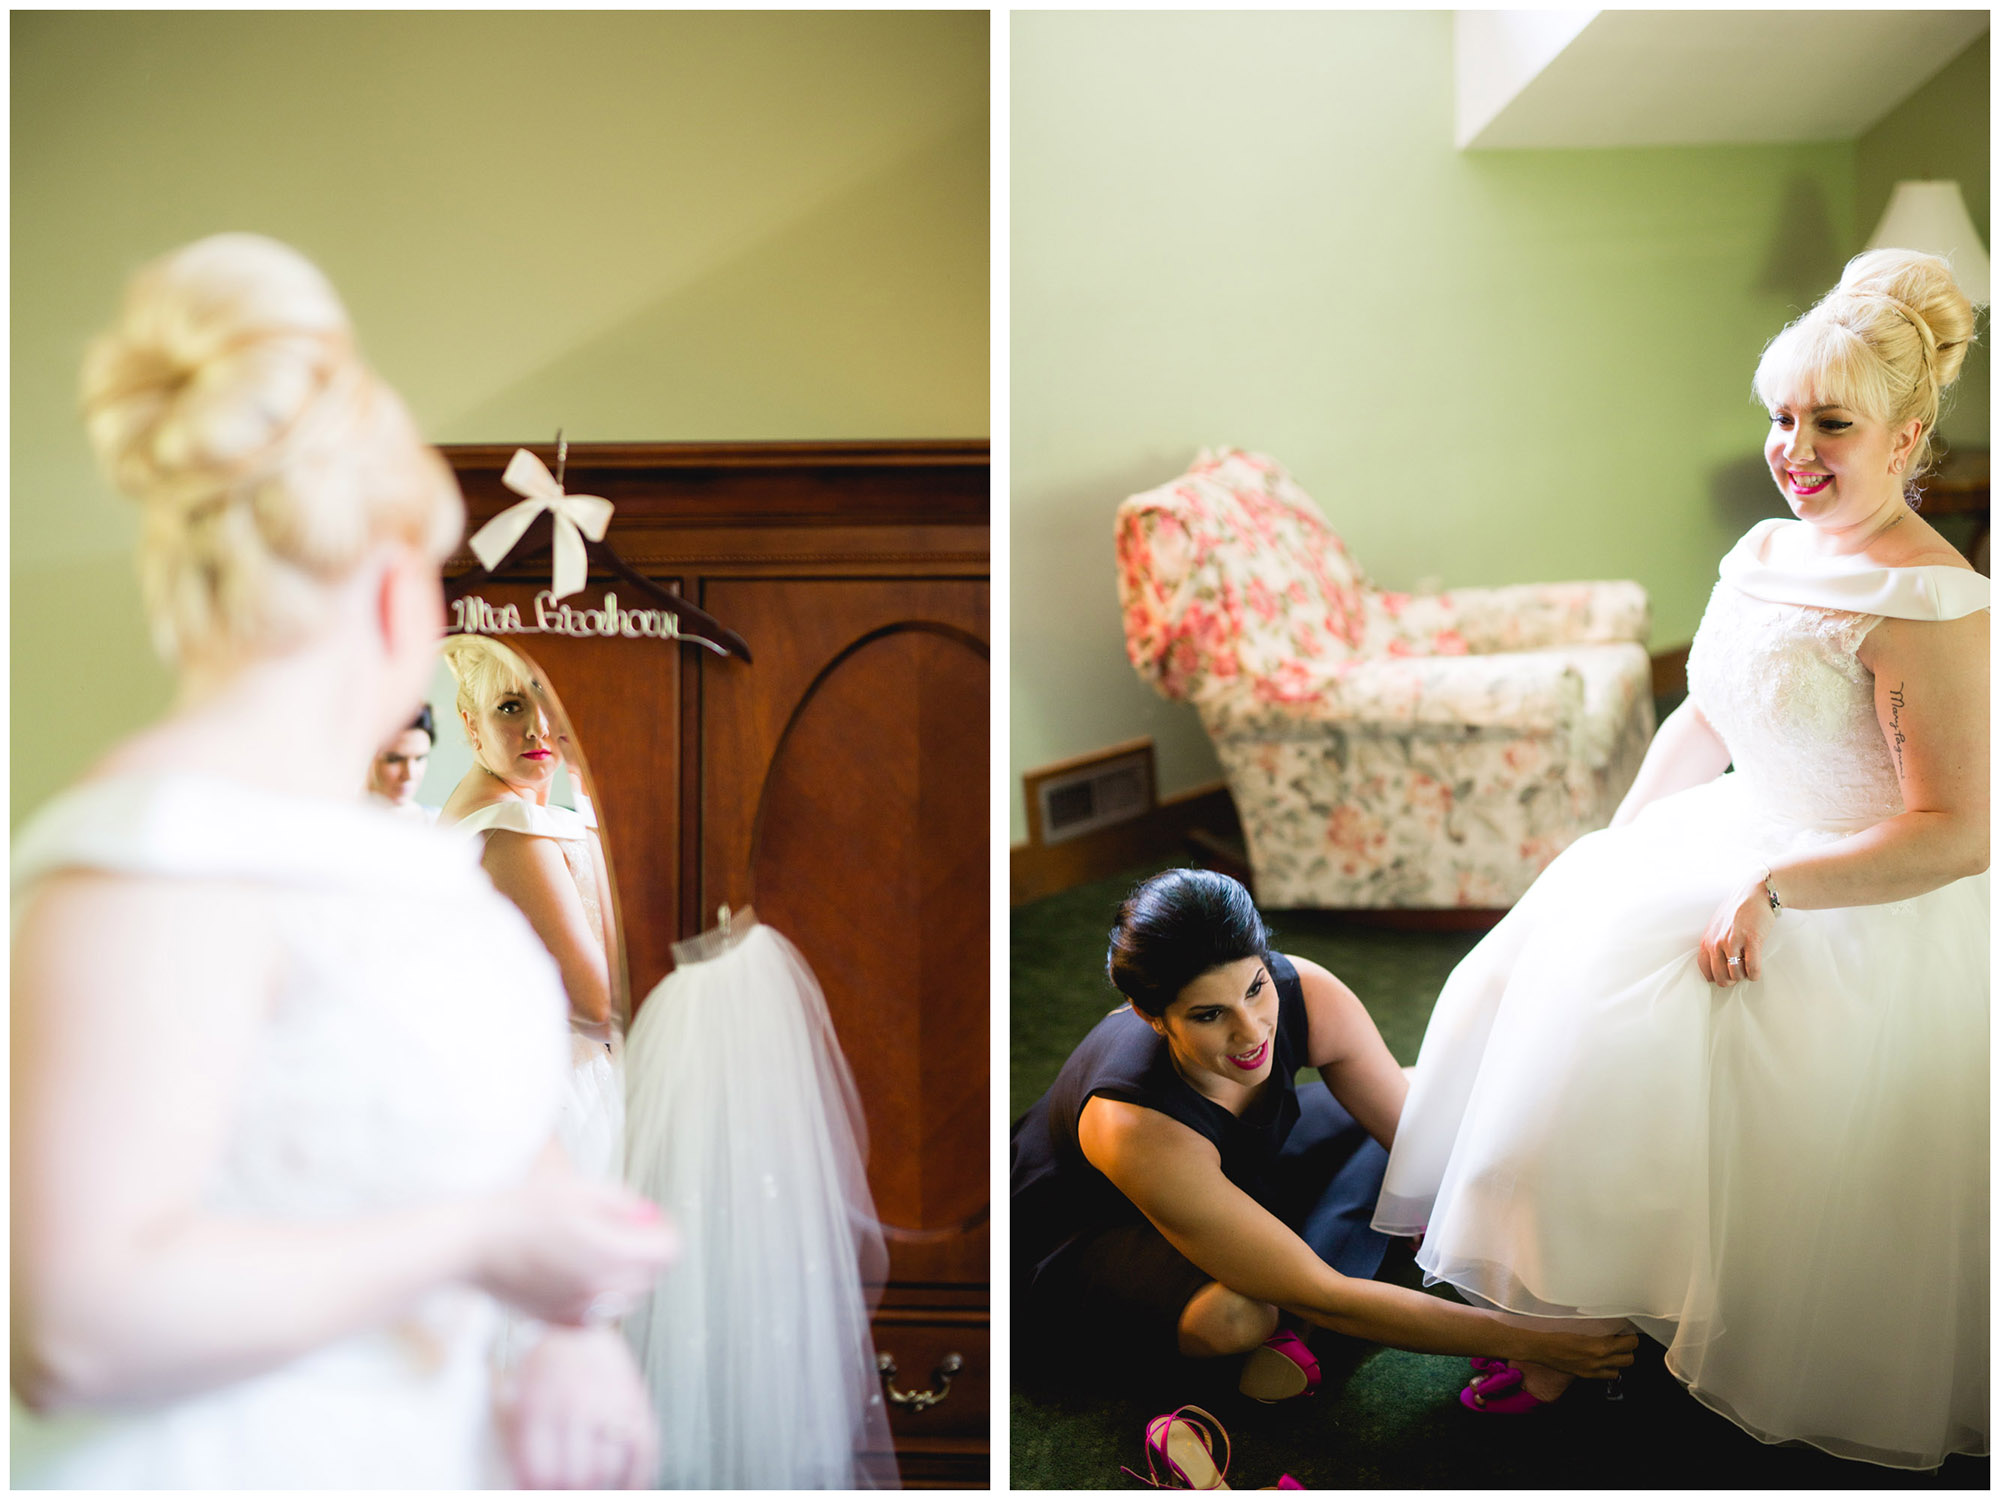 Caitlin & Joe's Stroudsmoor Woodsgate Wedding 04